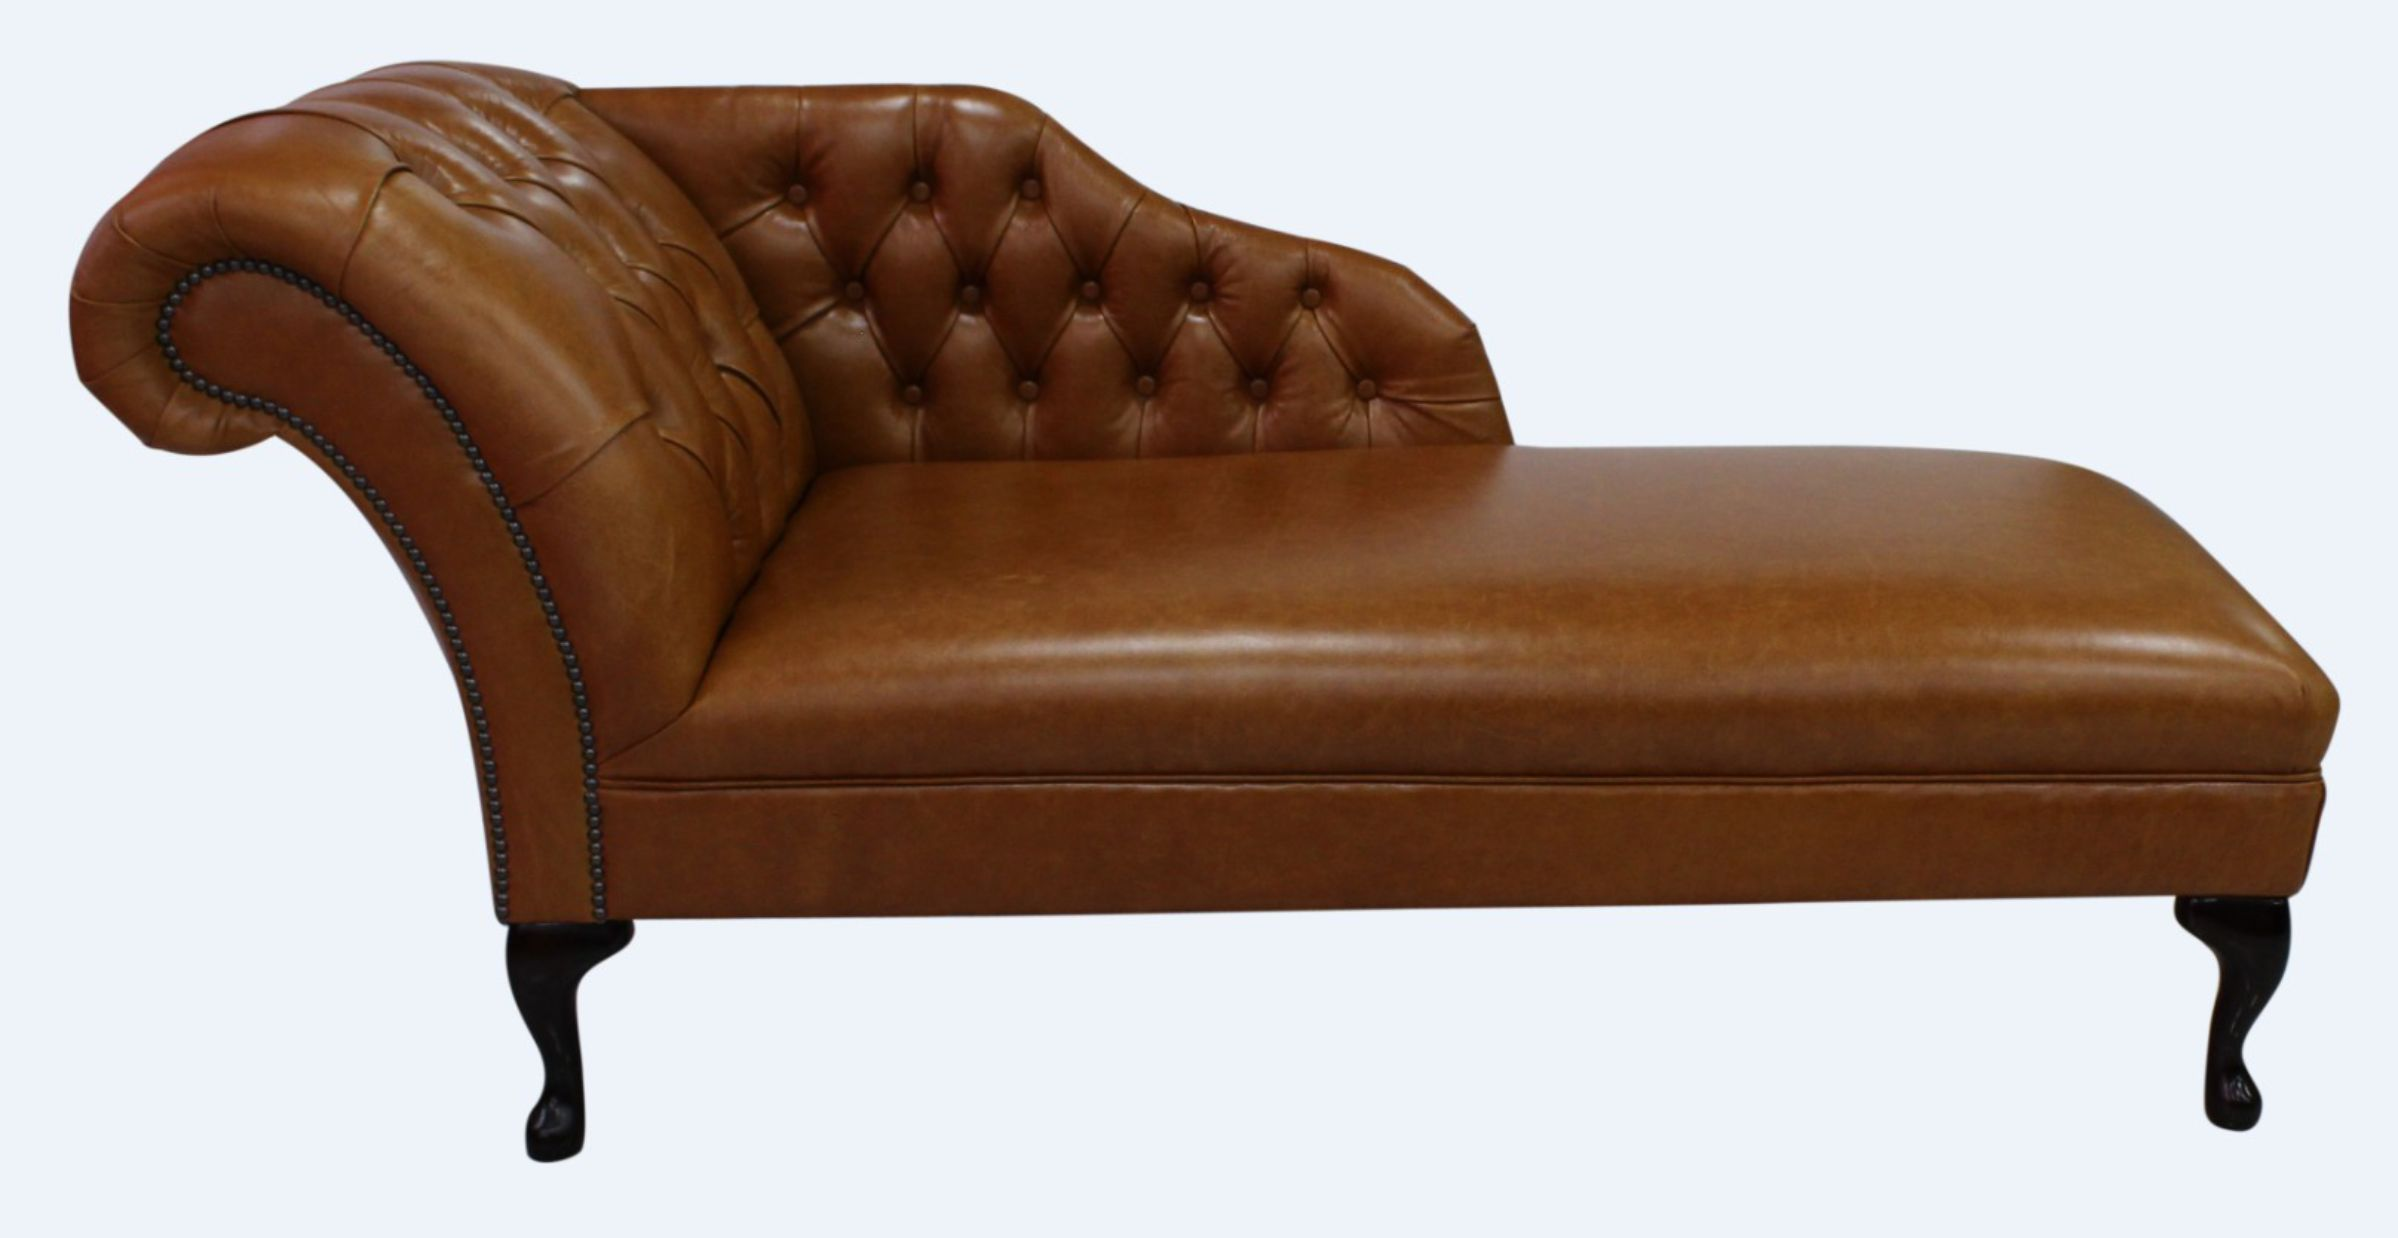 Chesterfield Leather Chaise Lounge Day Bed DesignerSofas4U : chesterfield chaise lounge old english bruciato leather 1200x619 from www.designersofas4u.co.uk size 1199 x 619 jpeg 74kB